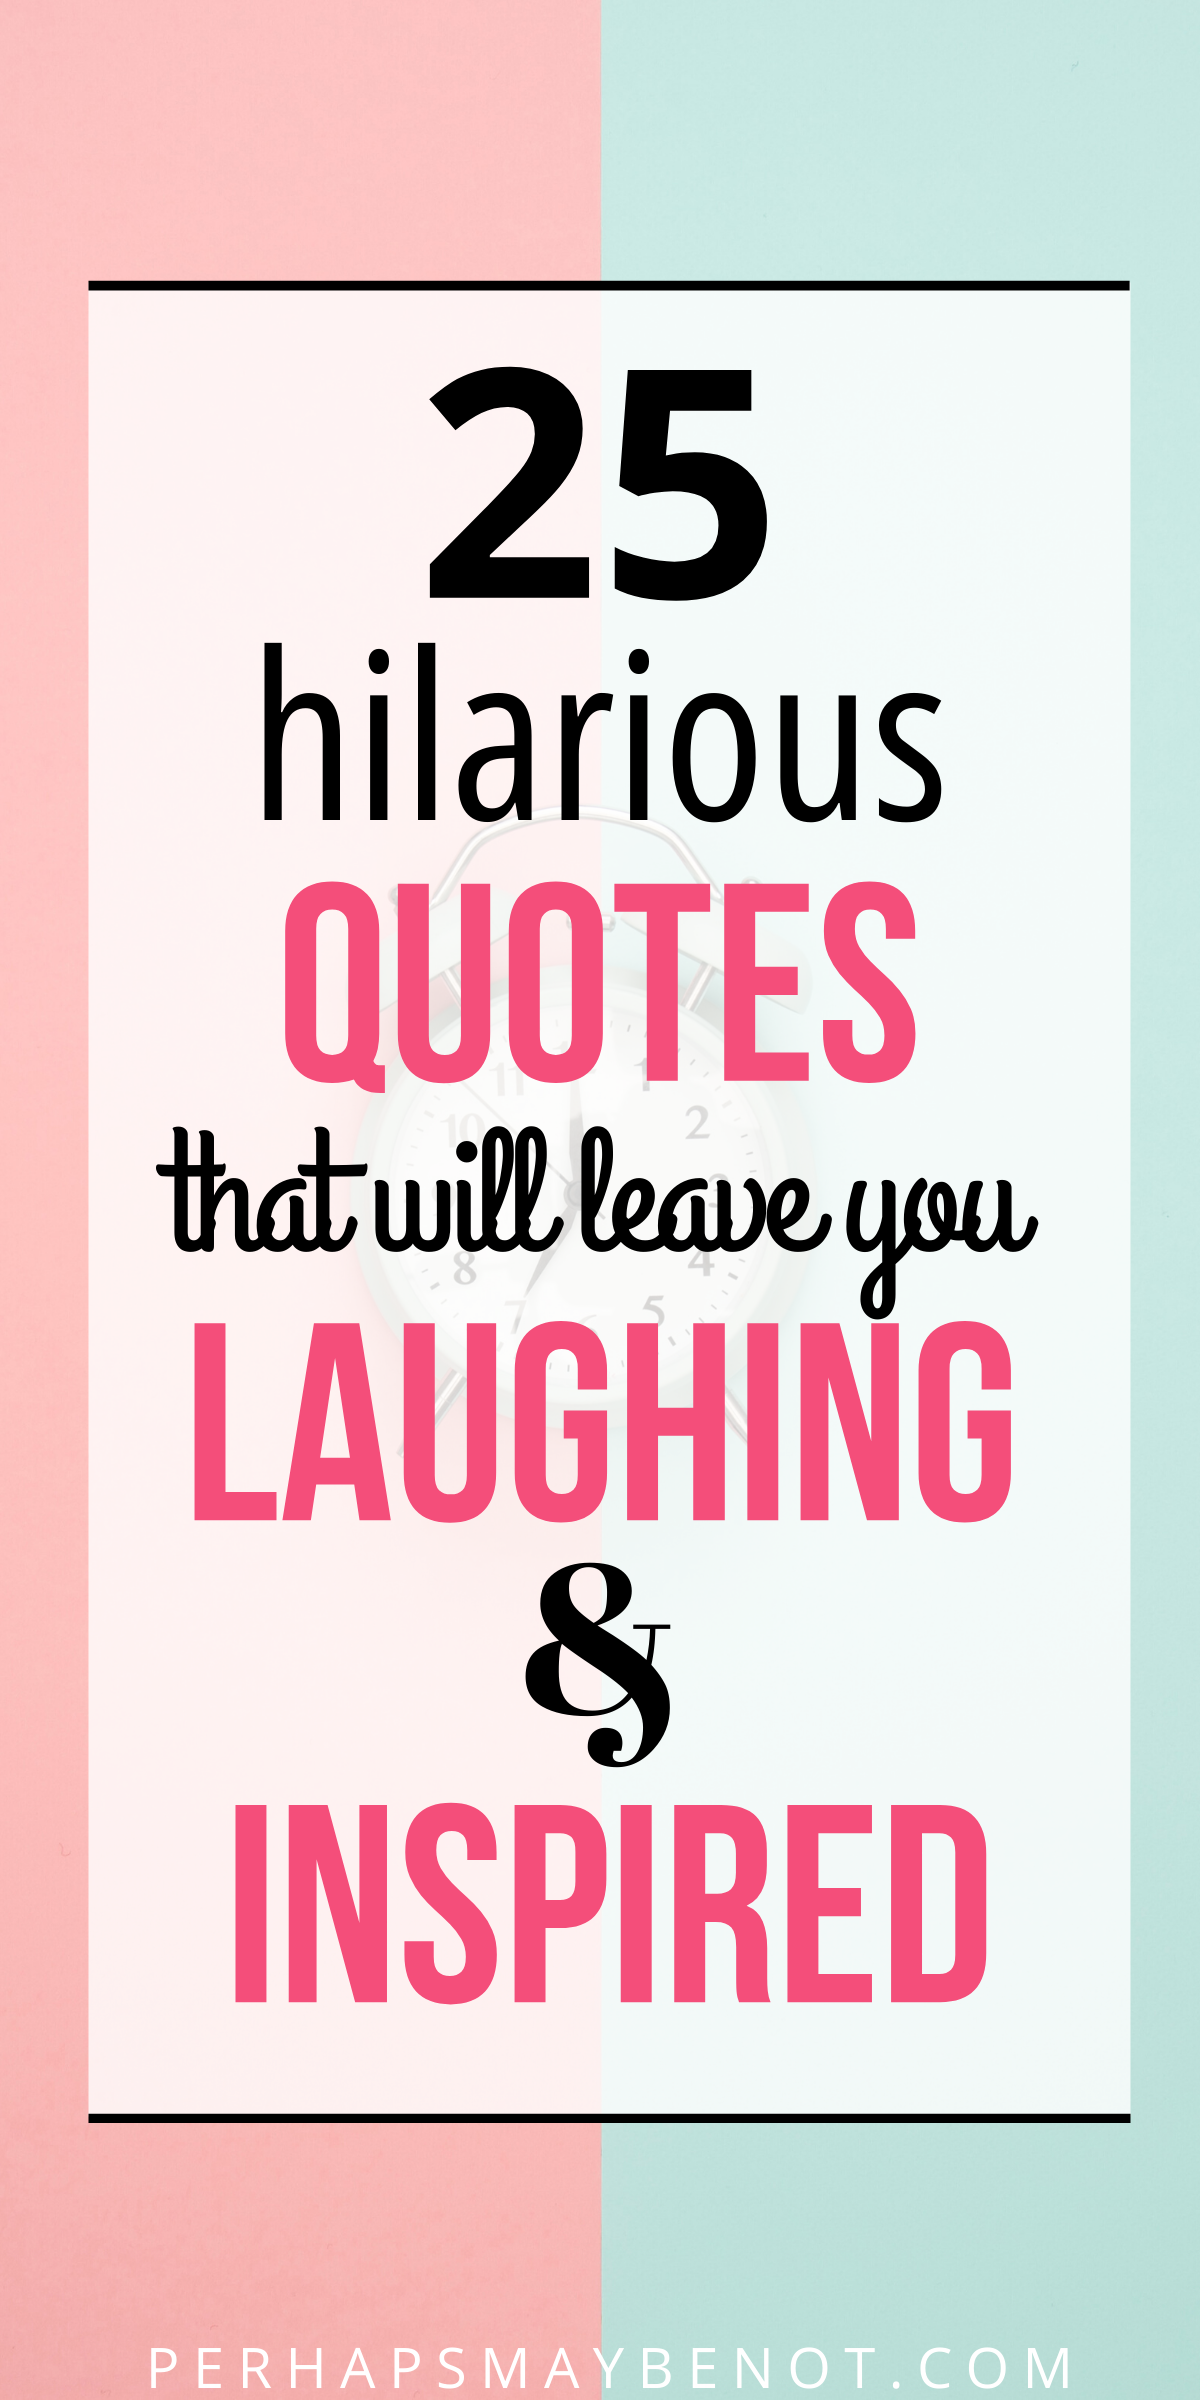 25 Funny Life Quotes That Will Make You Smile Perhaps Maybe Not Madea Funny Quotes Life Quotes Funny Quotes About Life